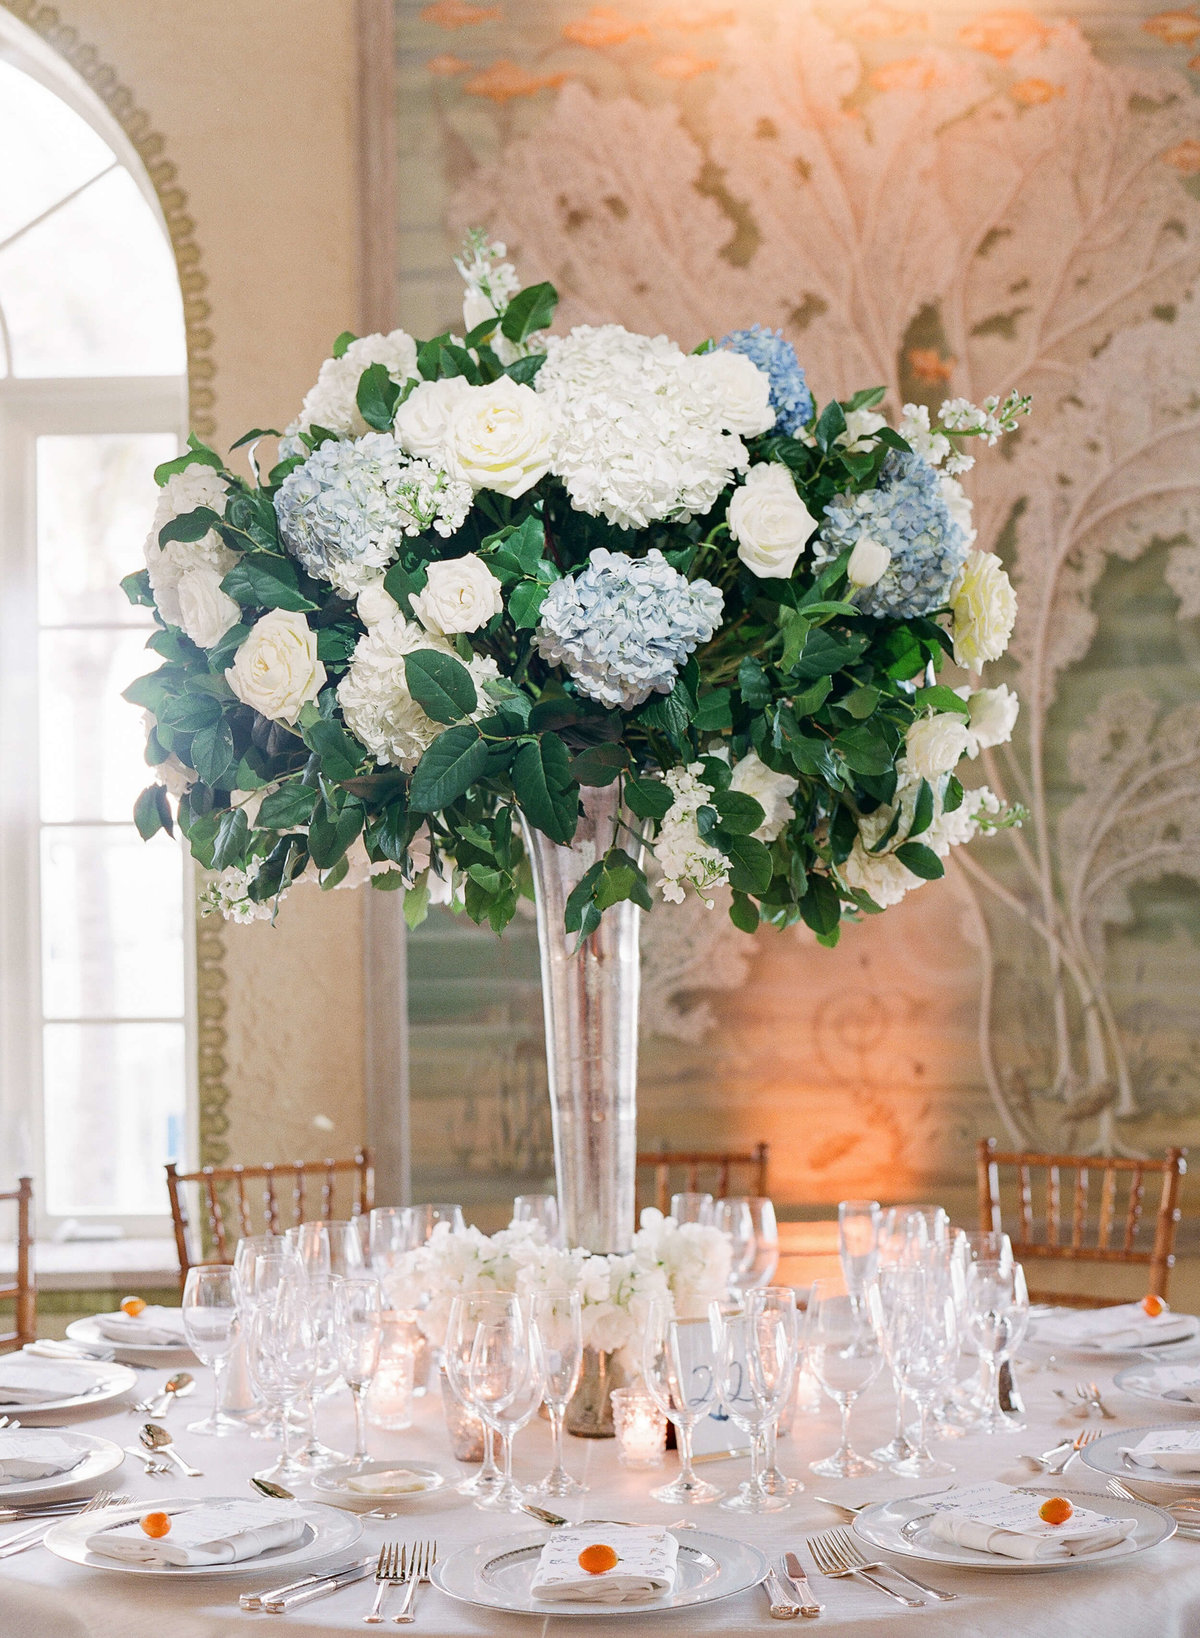 54-KTMerry-weddings-table-flowers-Palm-Beach